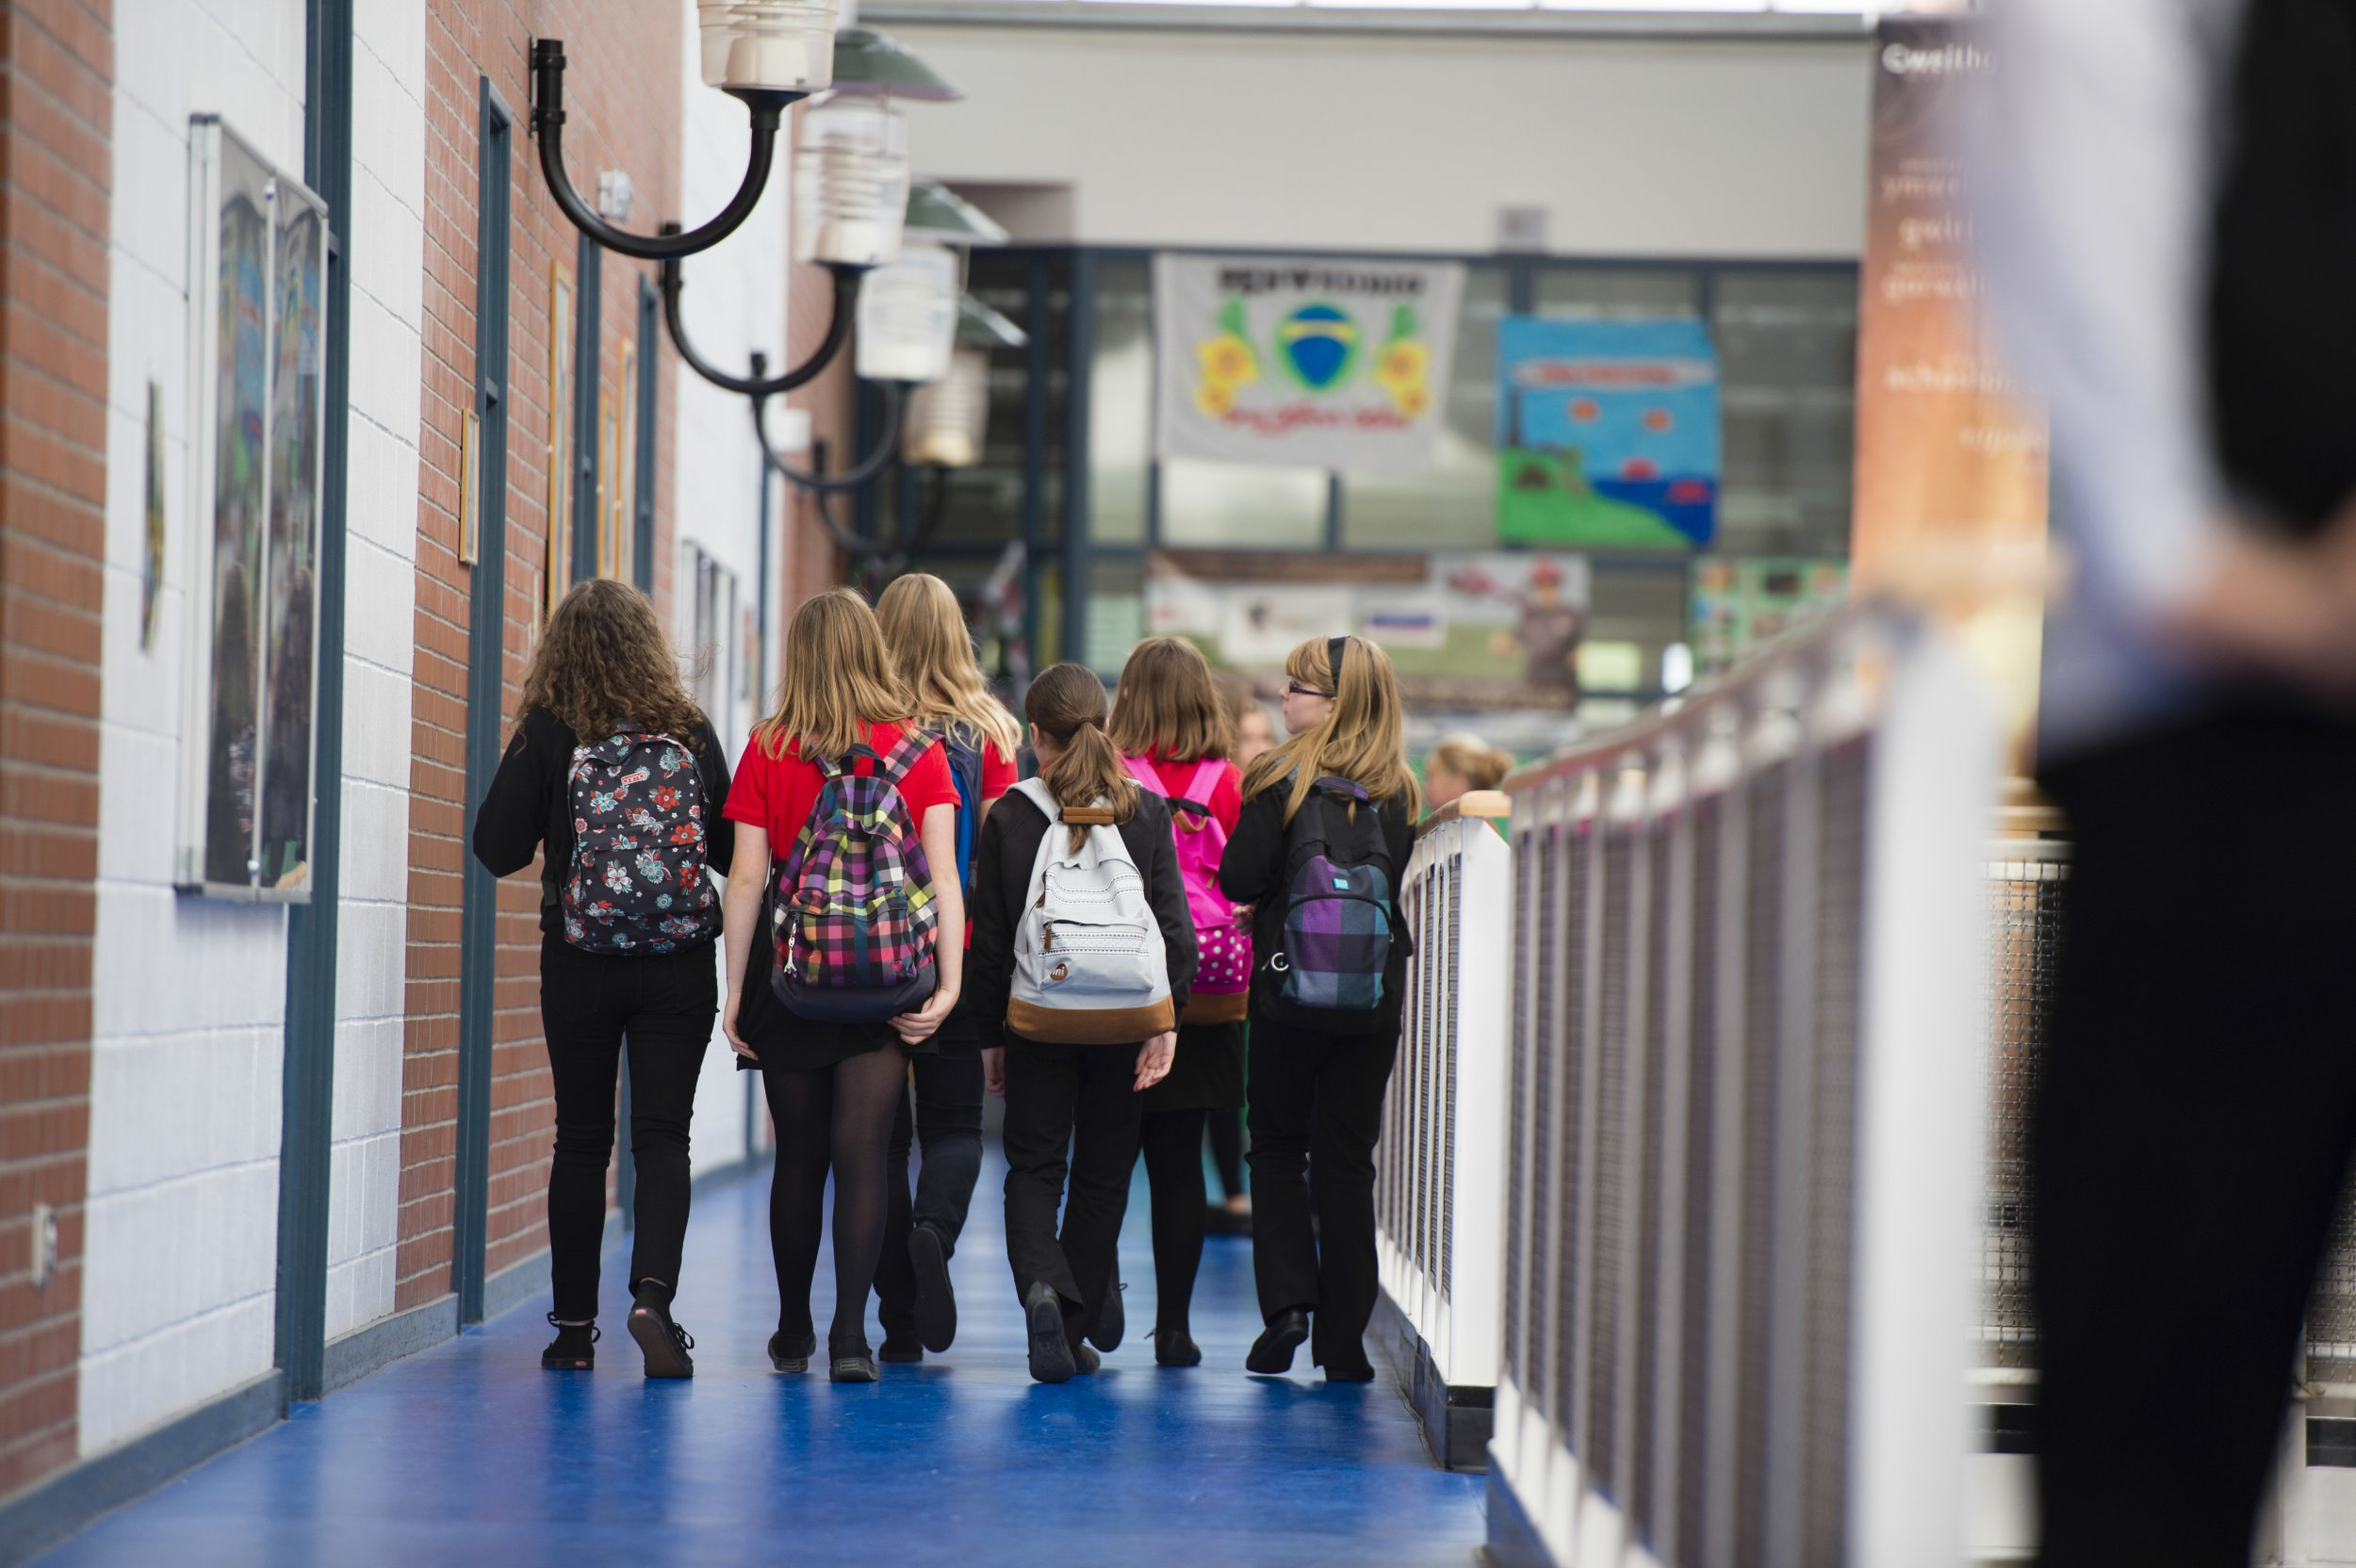 Secondary education Wales UK: rear view of girl pupils walking to classes lessons (Photo by: Photofusion/UIG via Getty Images)